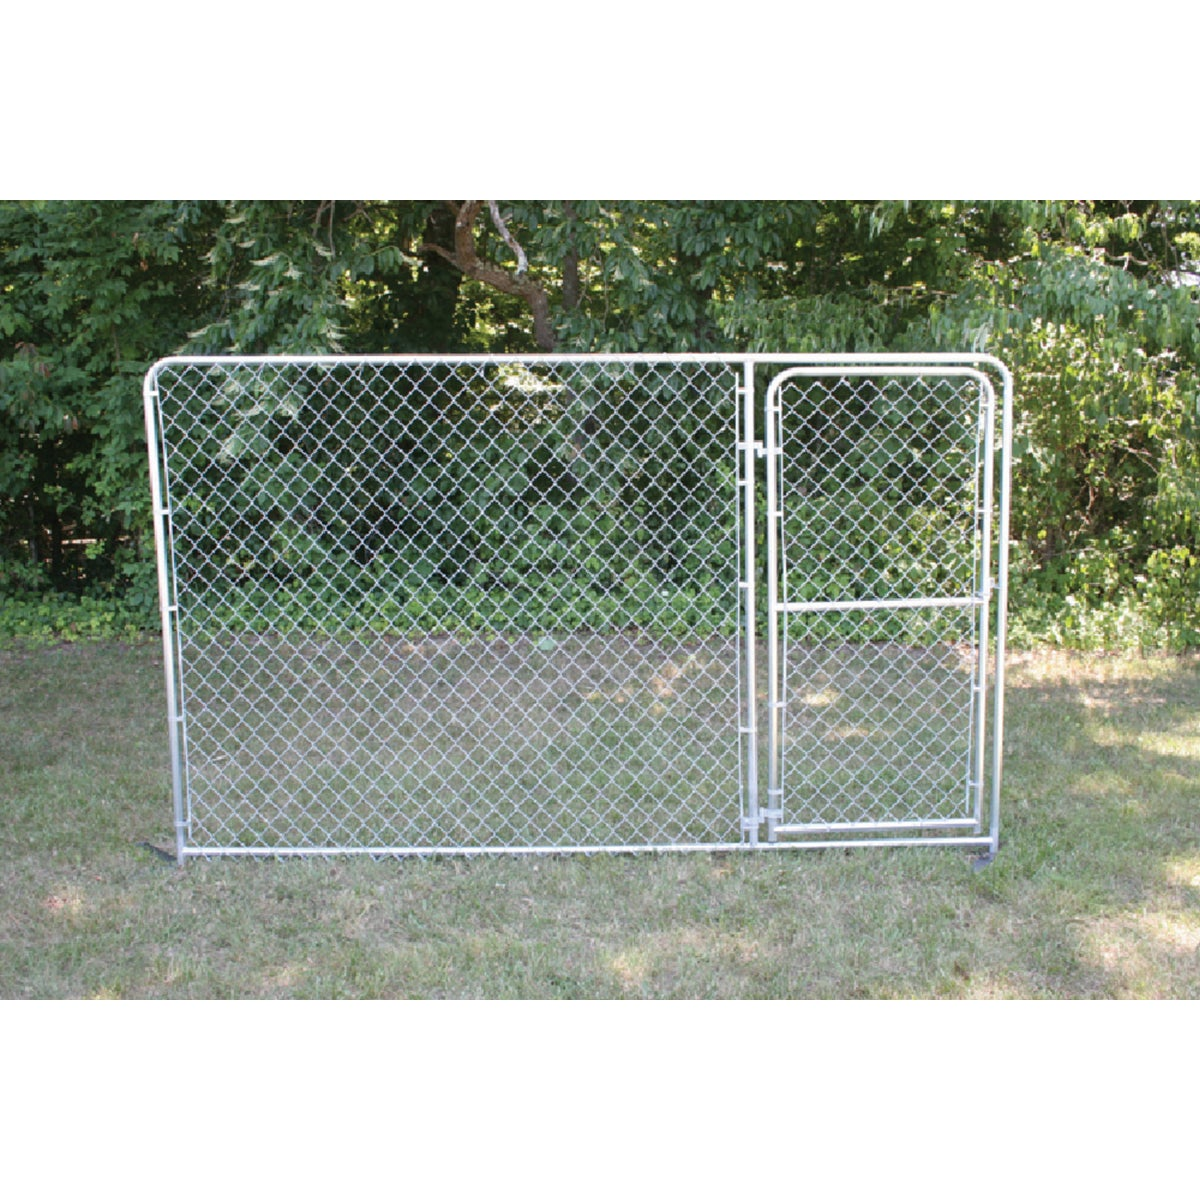 10X6 GATE KENNEL PANEL - 401106 by Behlen Country